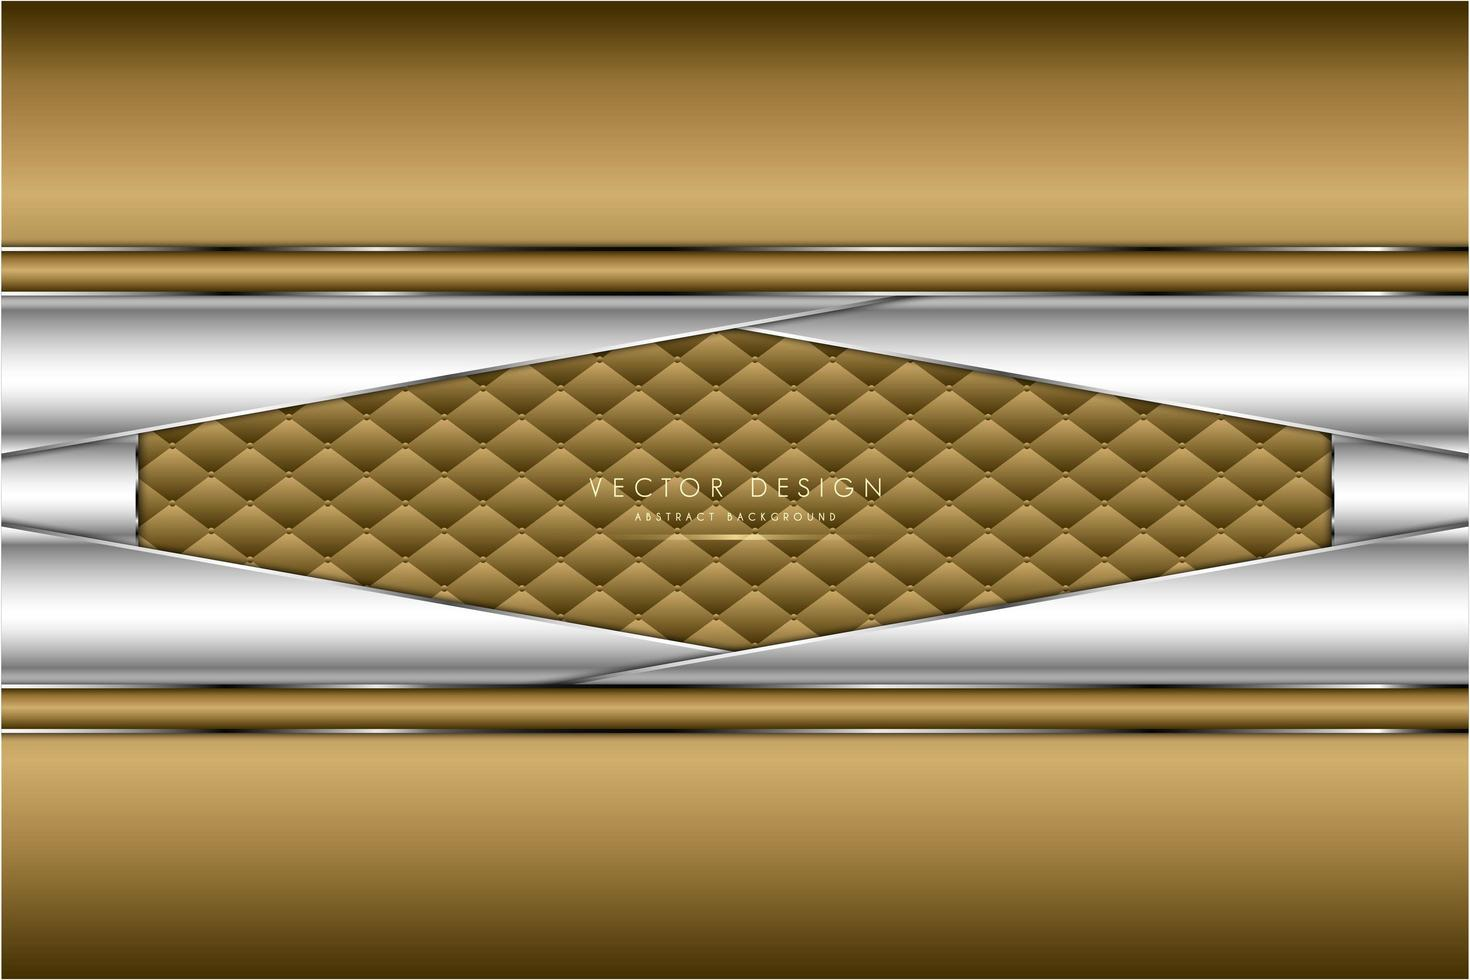 Metallic gold and silver angled panels with upholstery texture vector